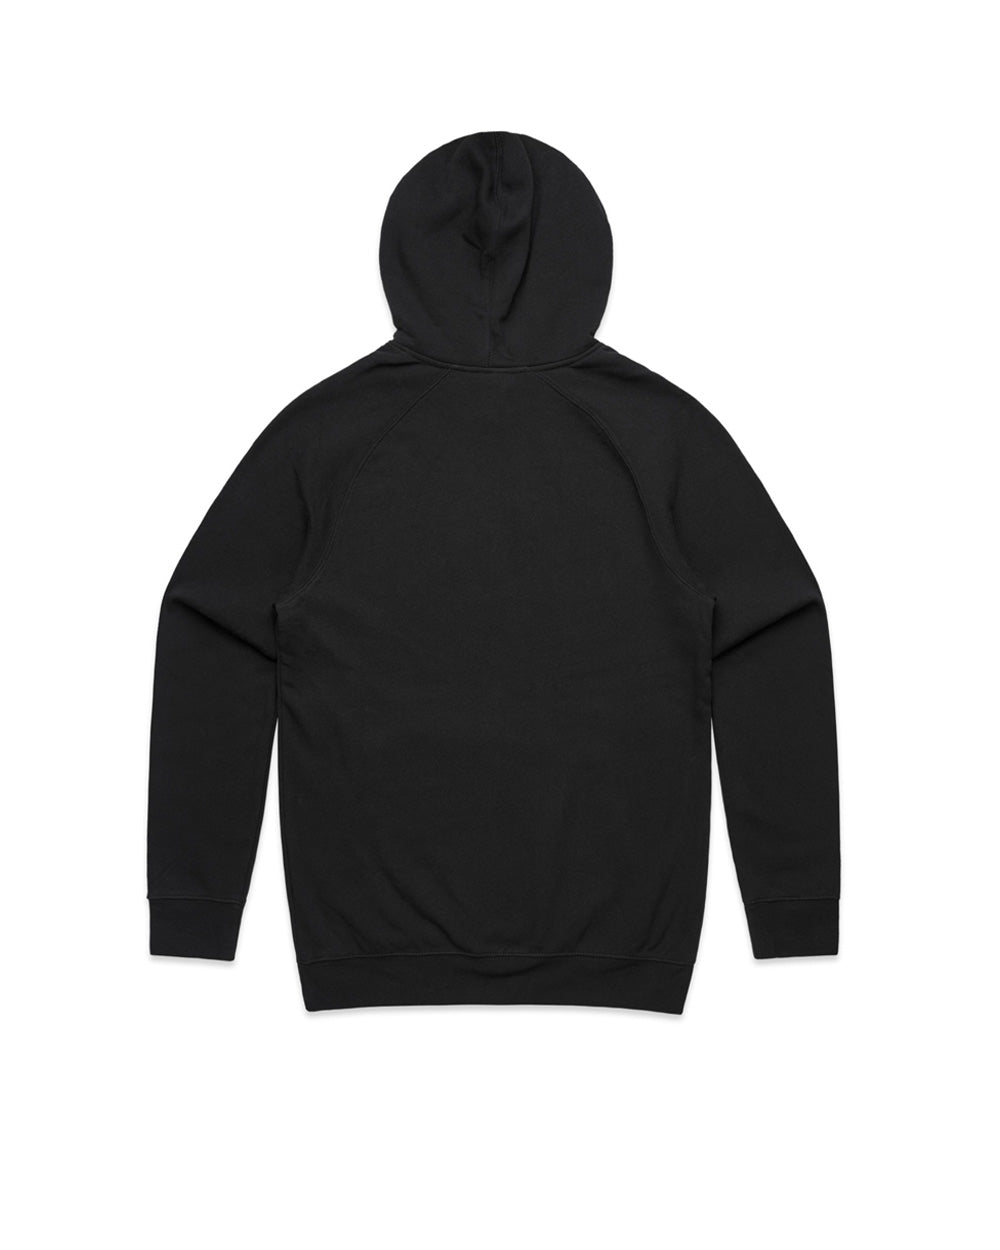 Unisex Signature Hoody - Threadbox